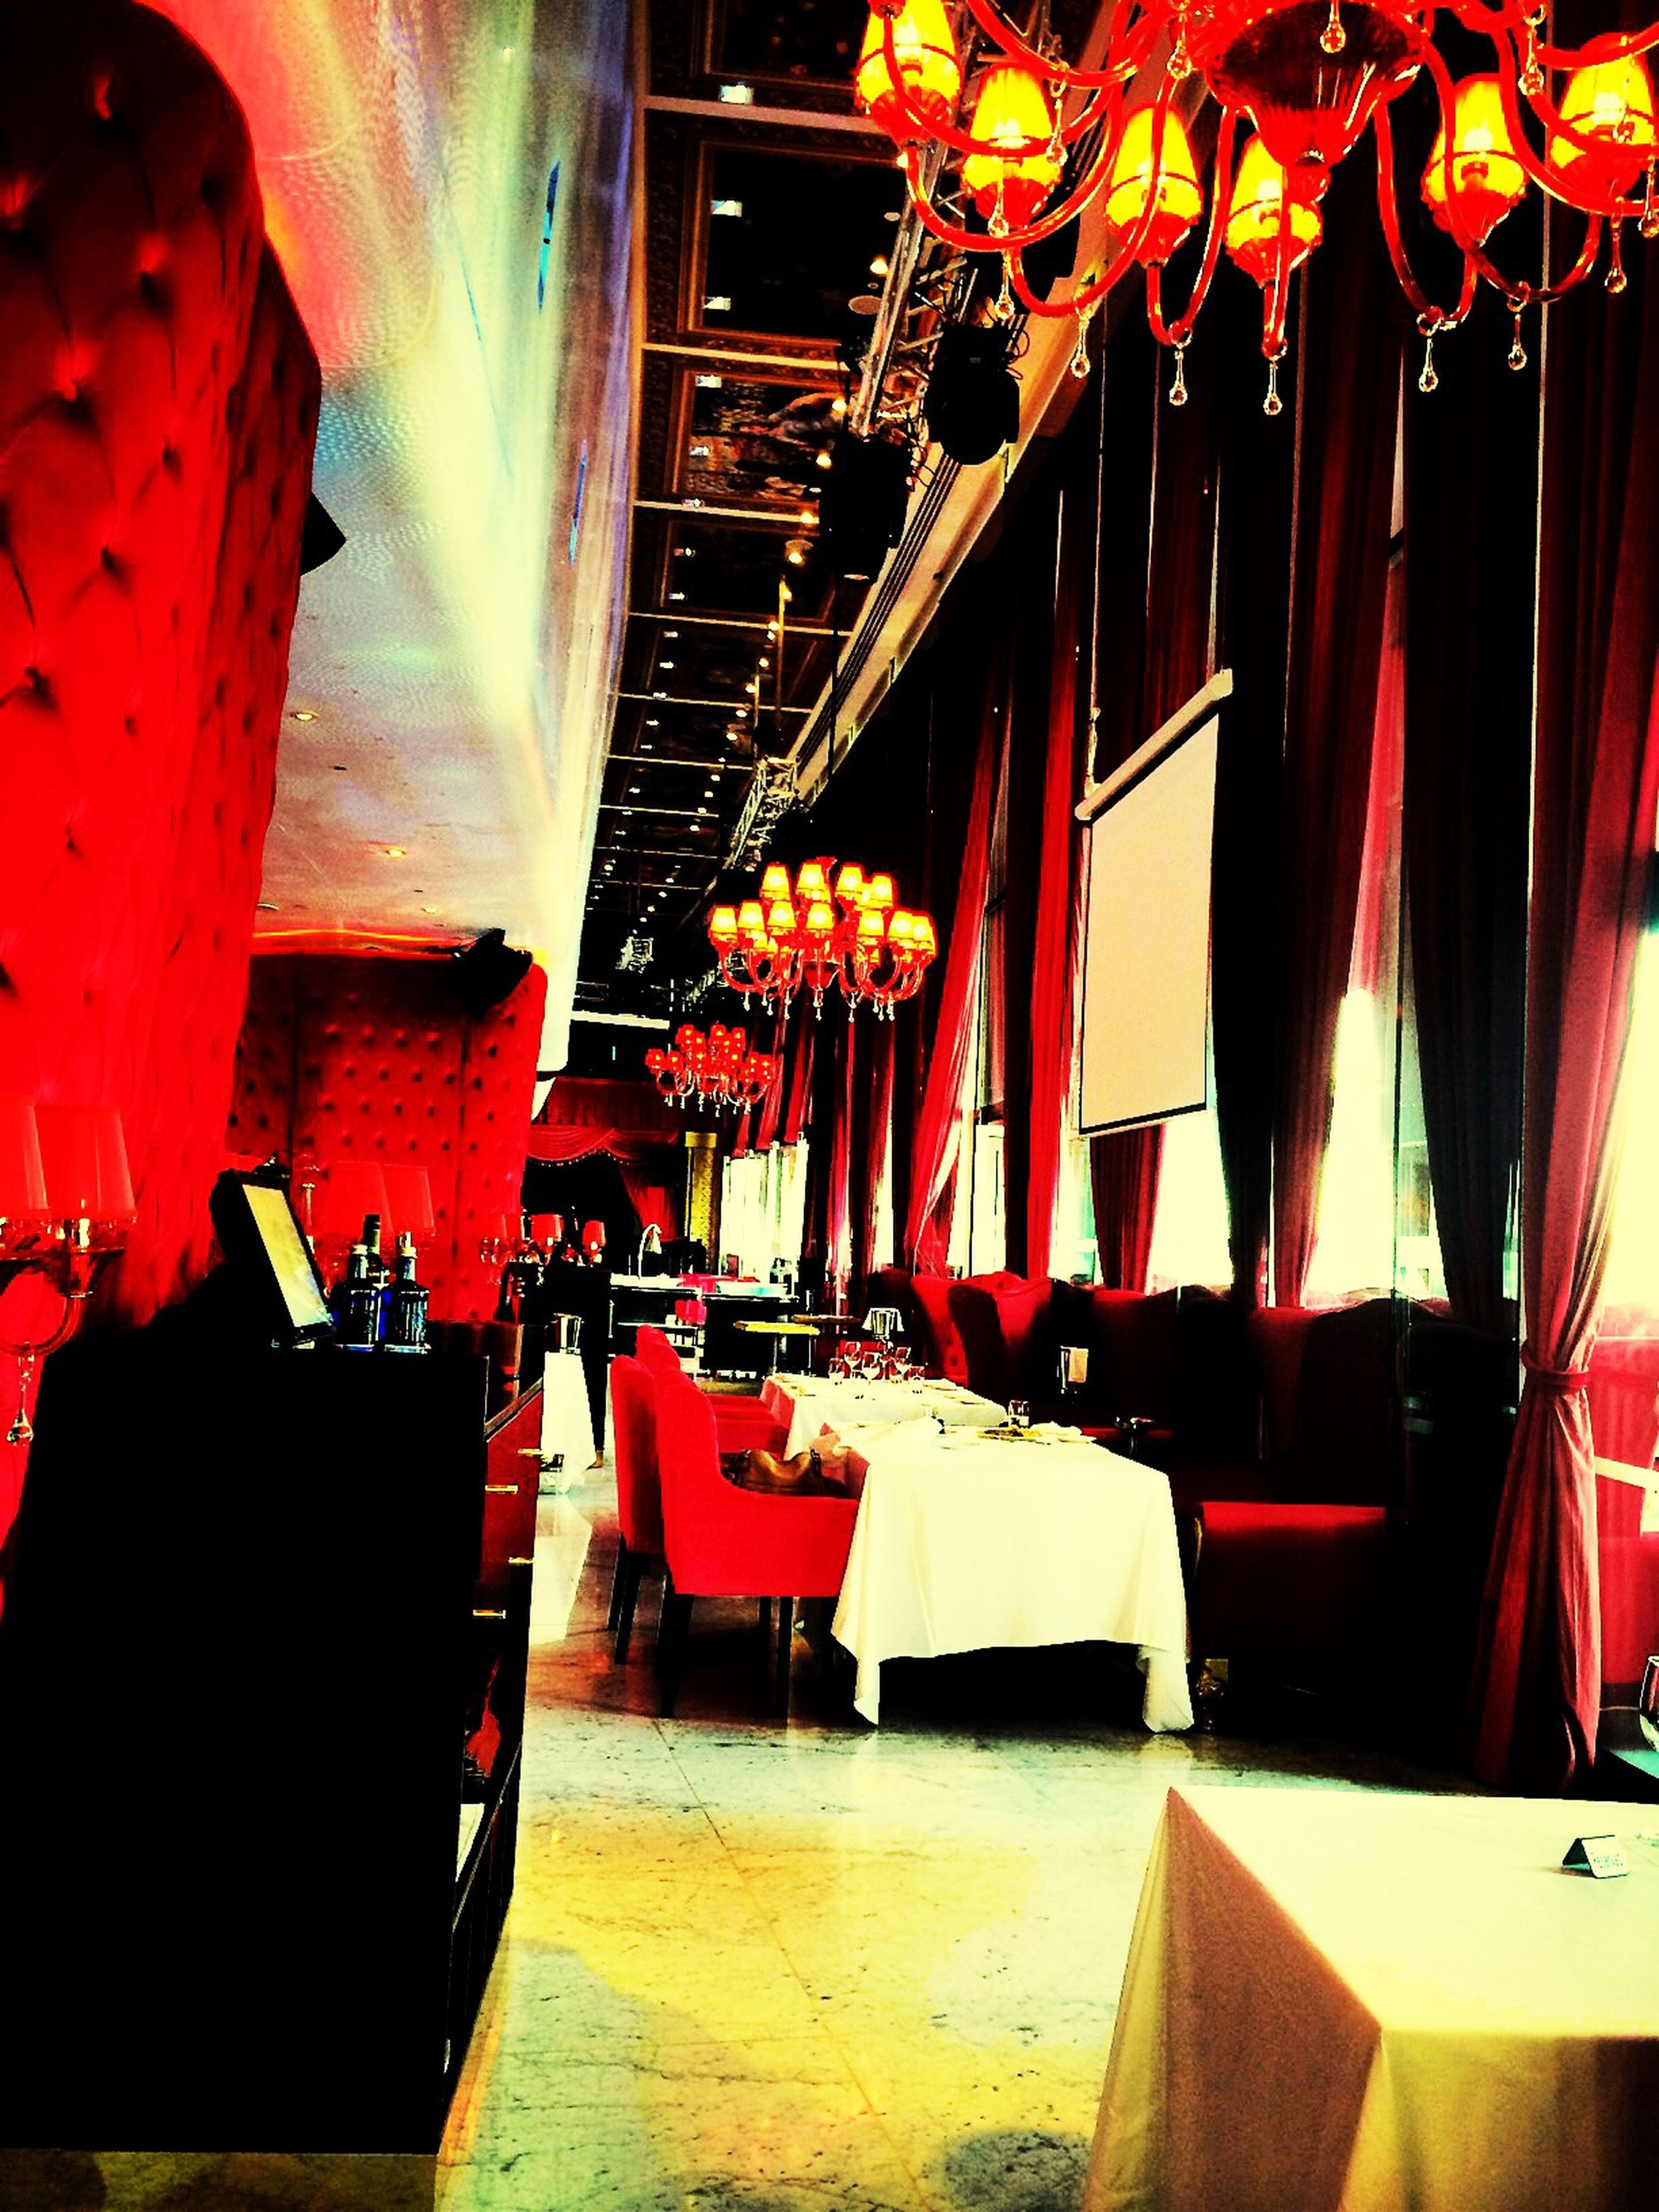 indoors, illuminated, architecture, chair, built structure, hanging, absence, restaurant, table, large group of objects, in a row, arrangement, lighting equipment, empty, no people, window, decoration, ceiling, curtain, sunlight